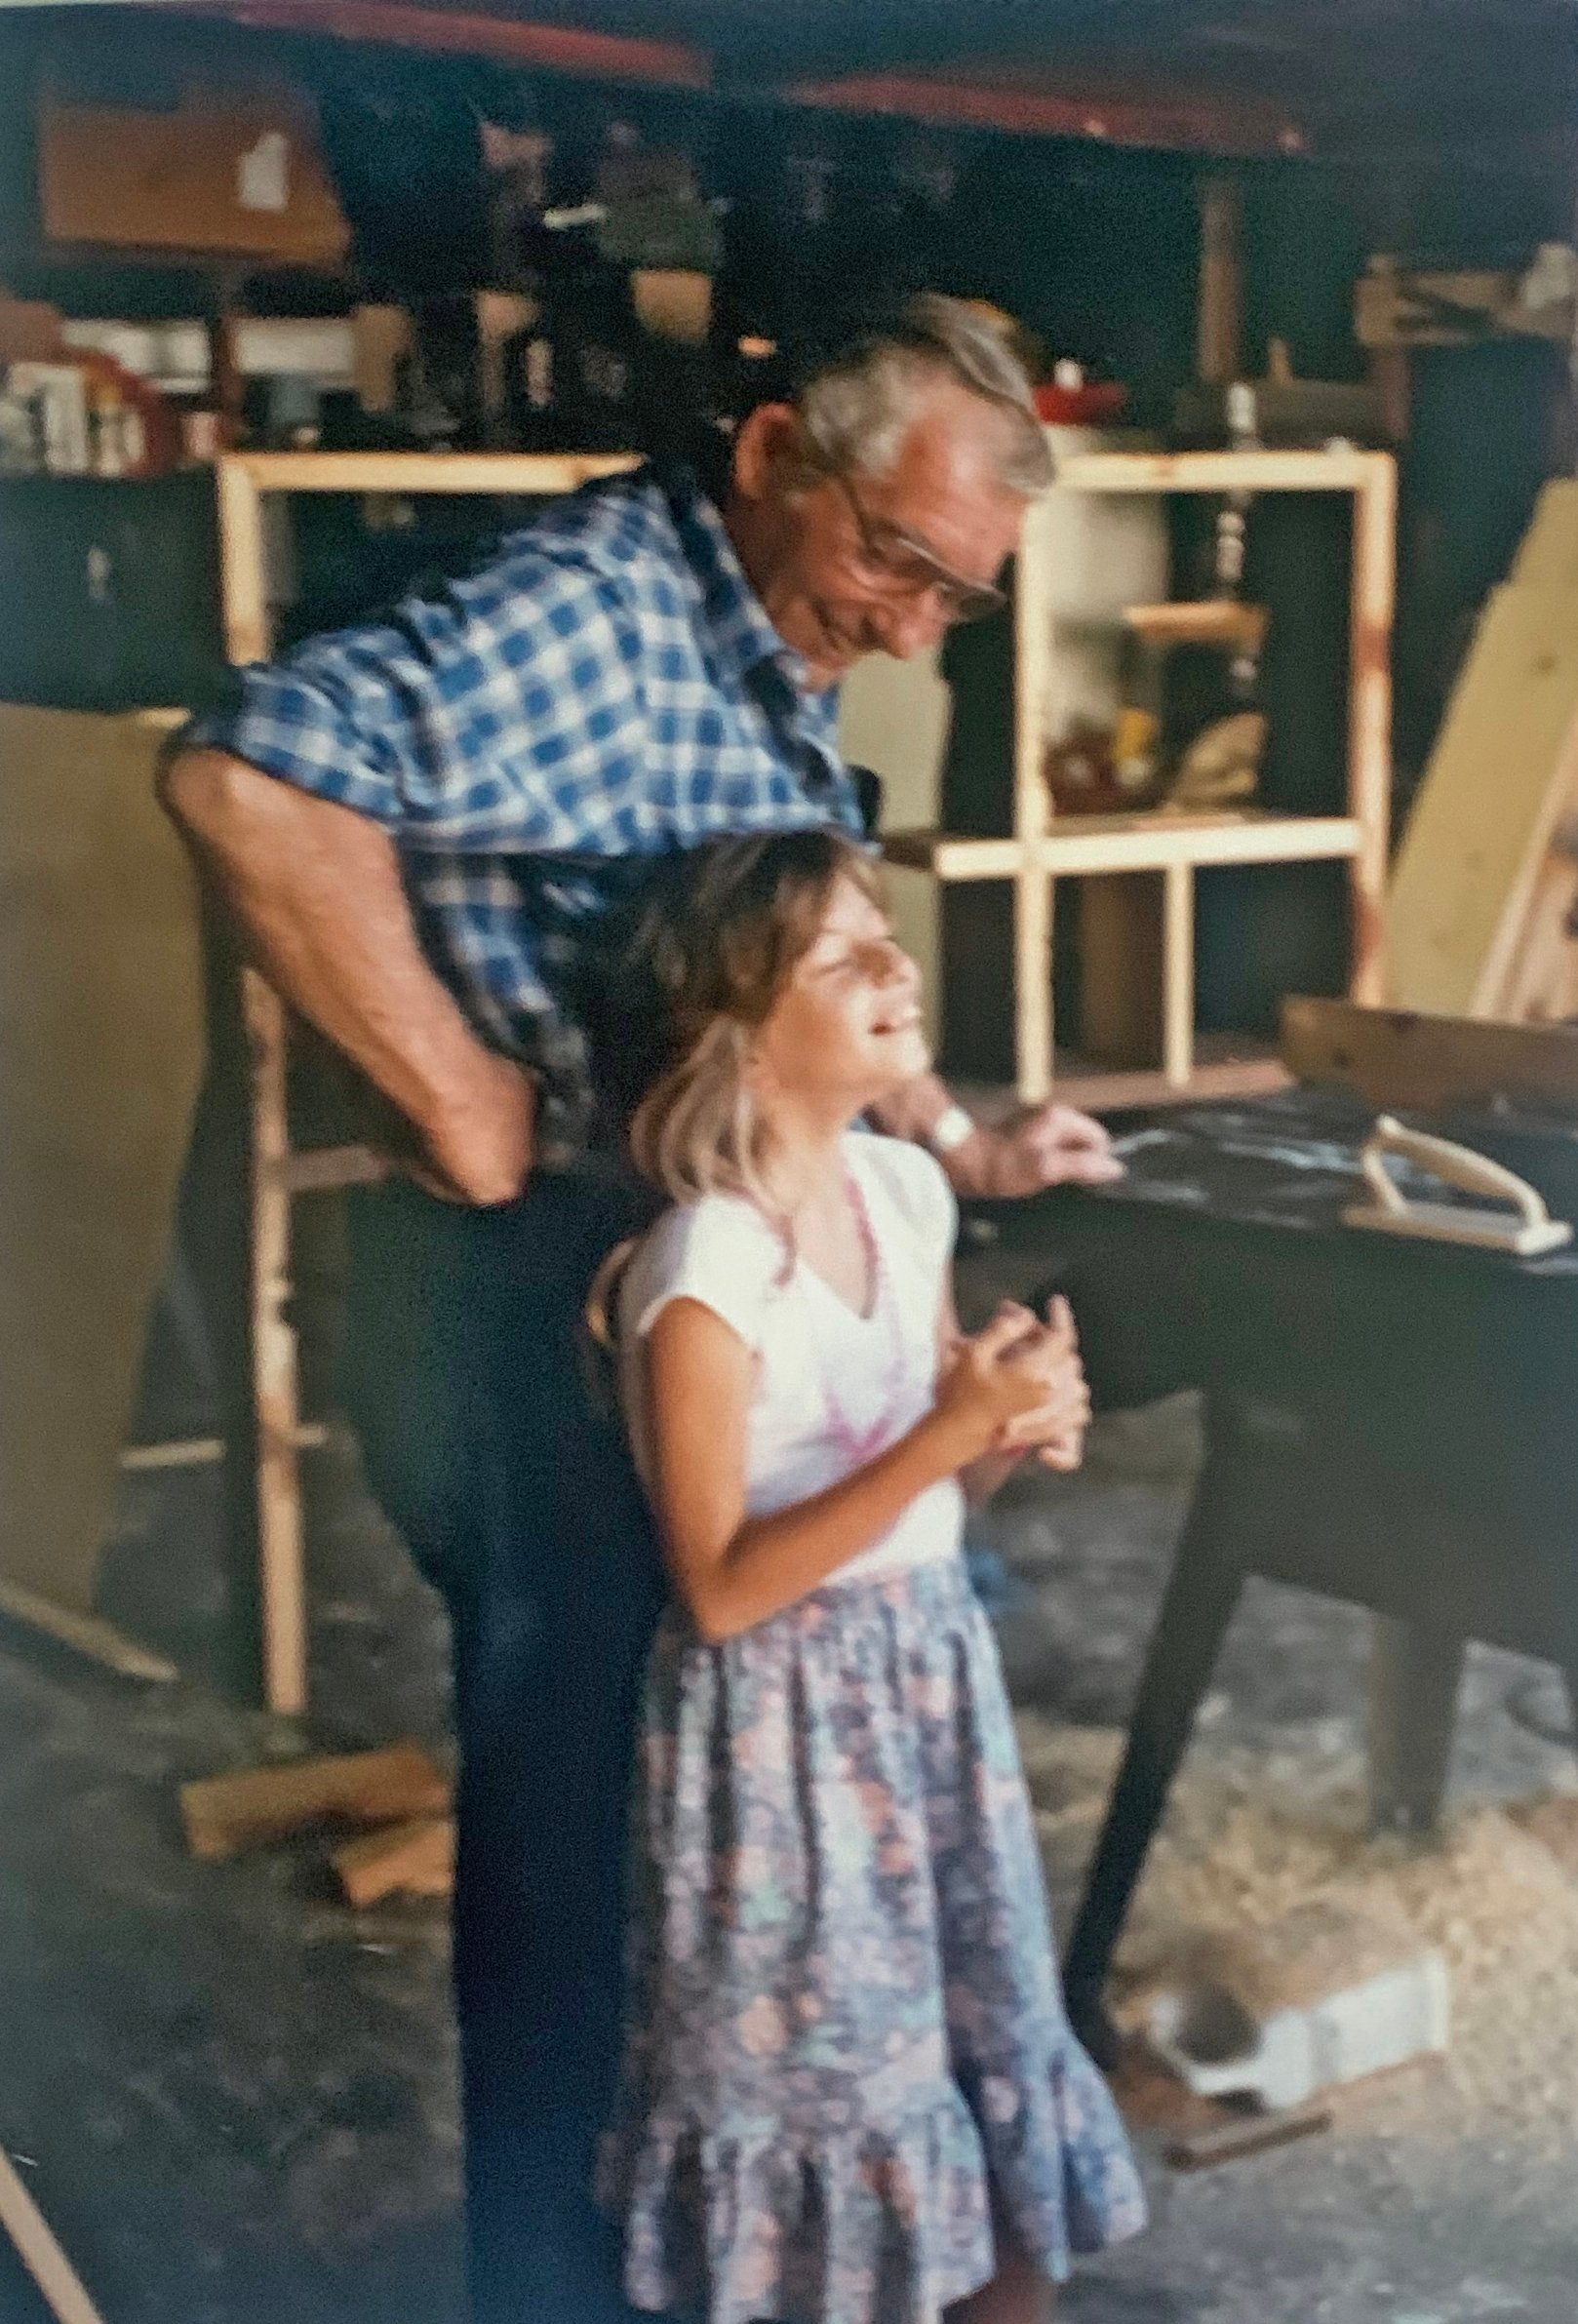 Lisa and her grandfather in their garage/woodworking shop